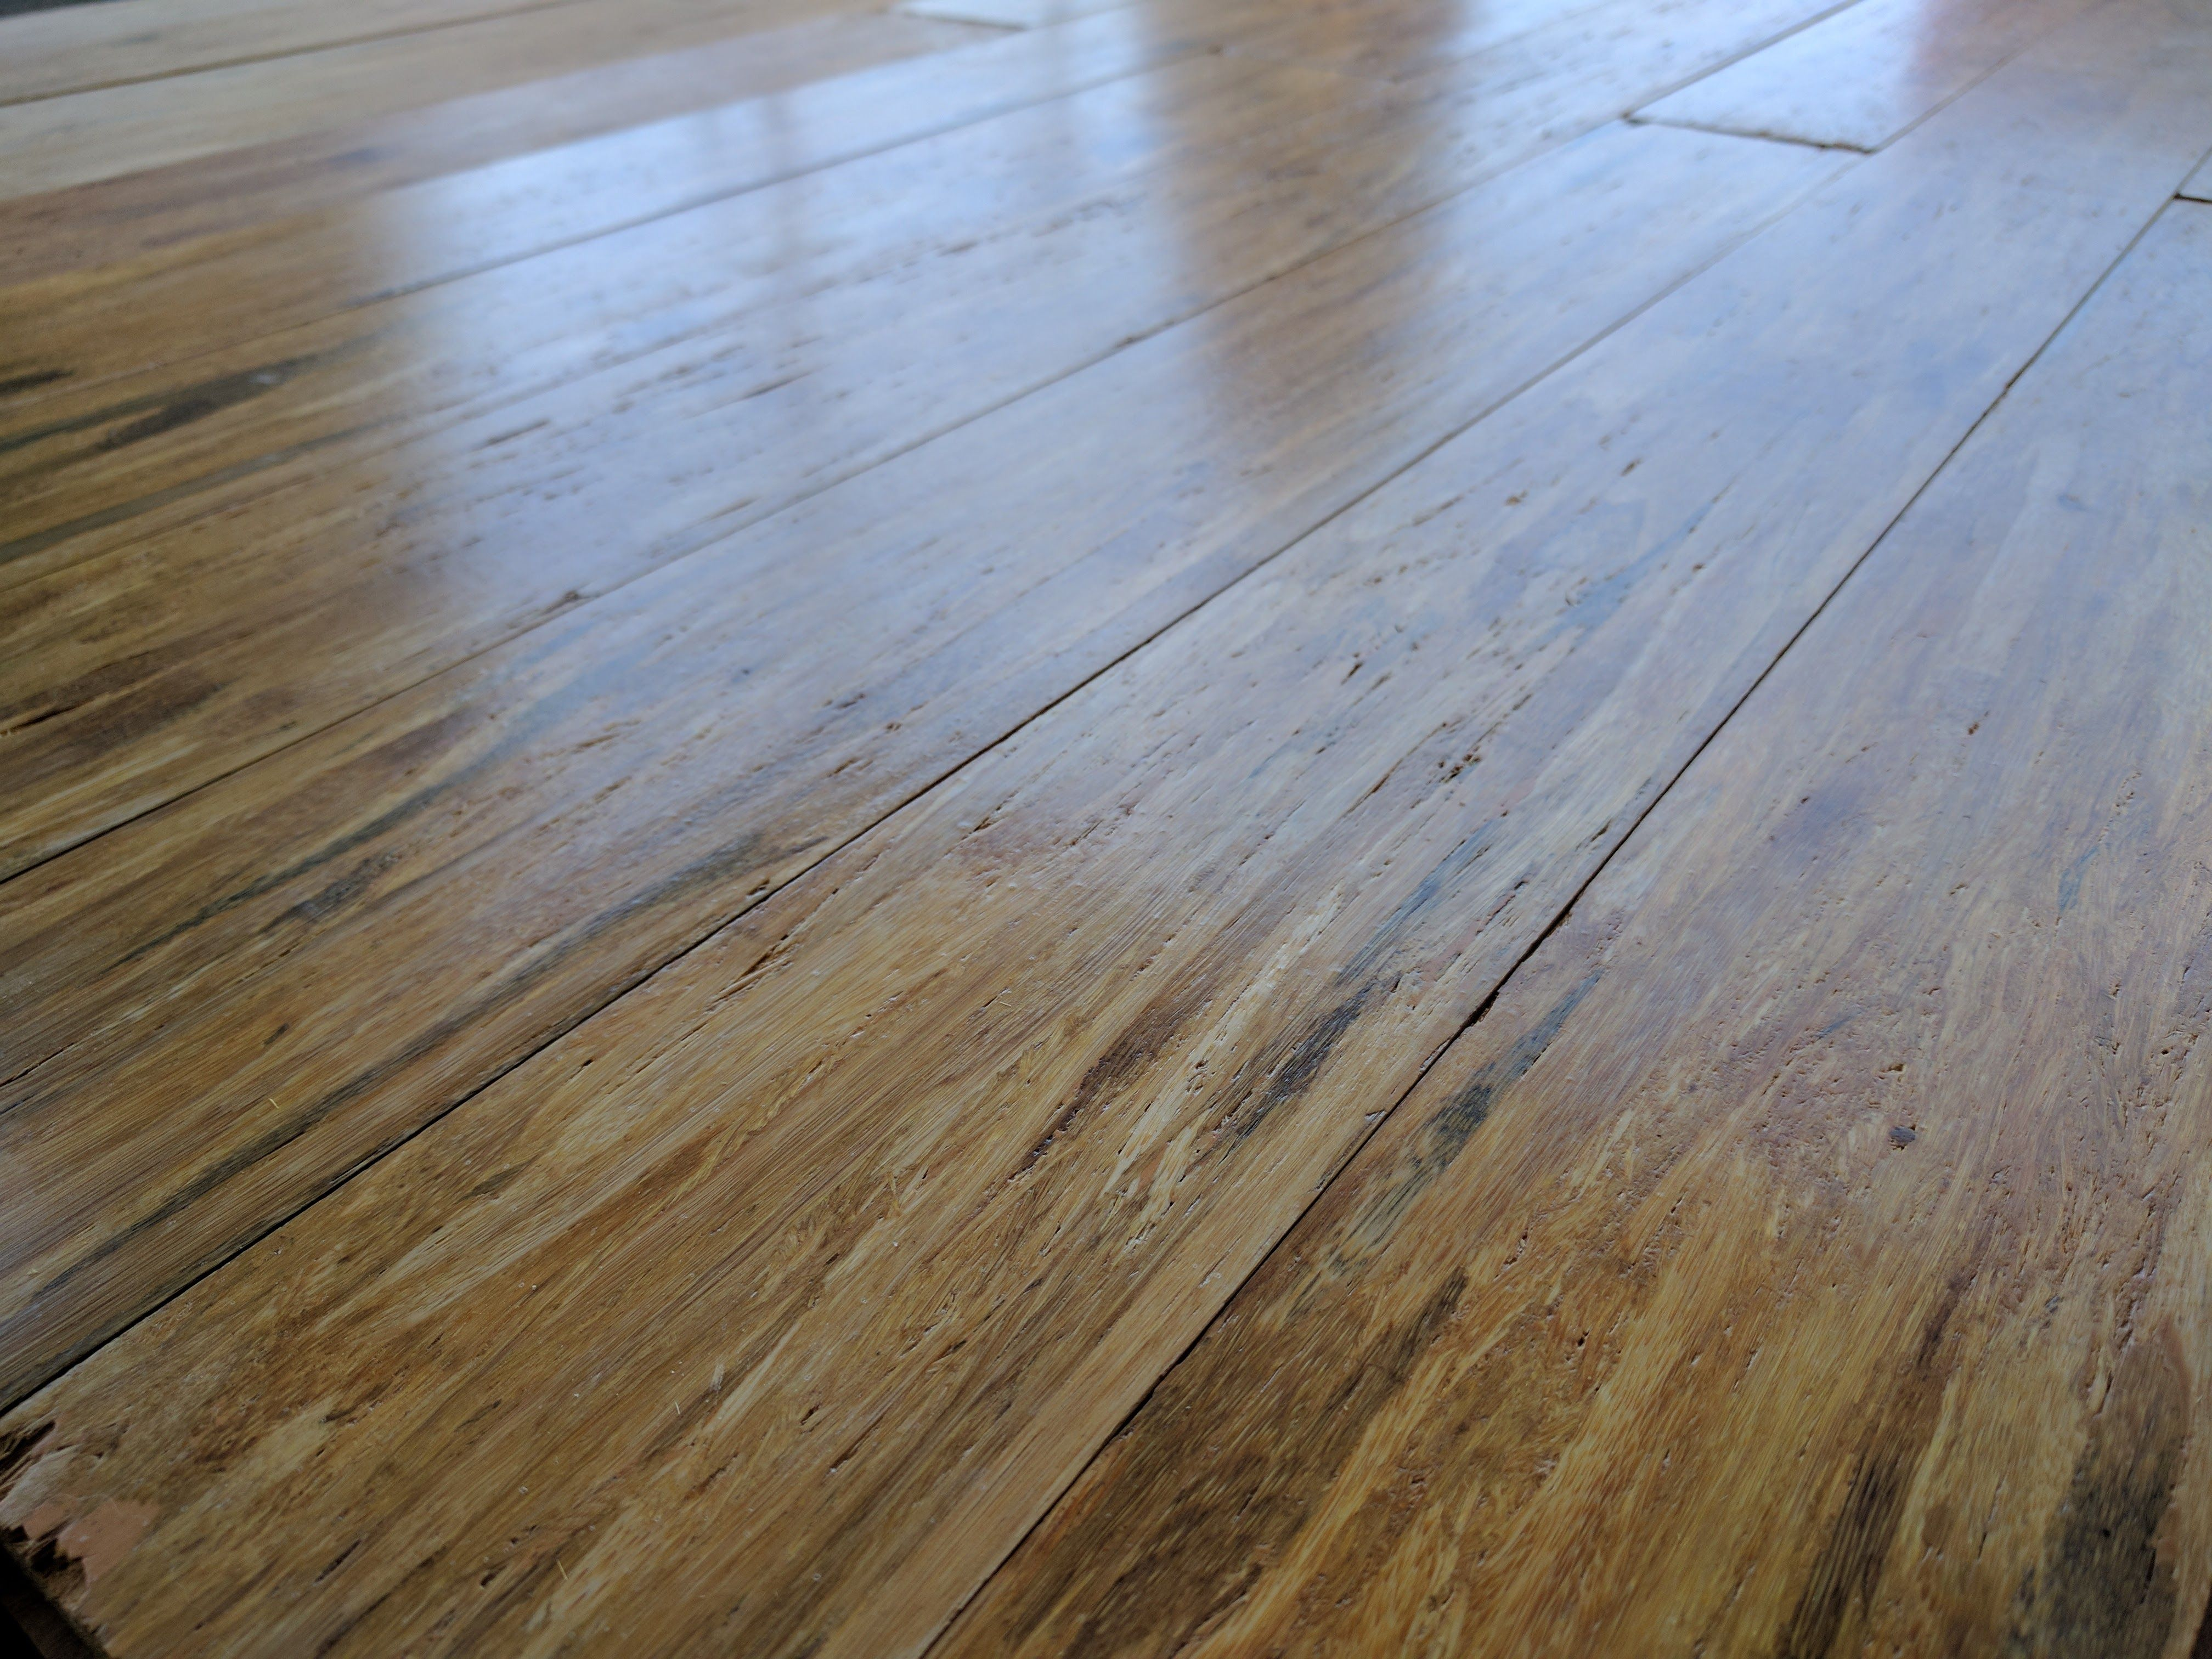 Bamboo Flooring Now Made In The Usa No More Formaldehyde Concerns From China Faca Voce Mesmo Facas